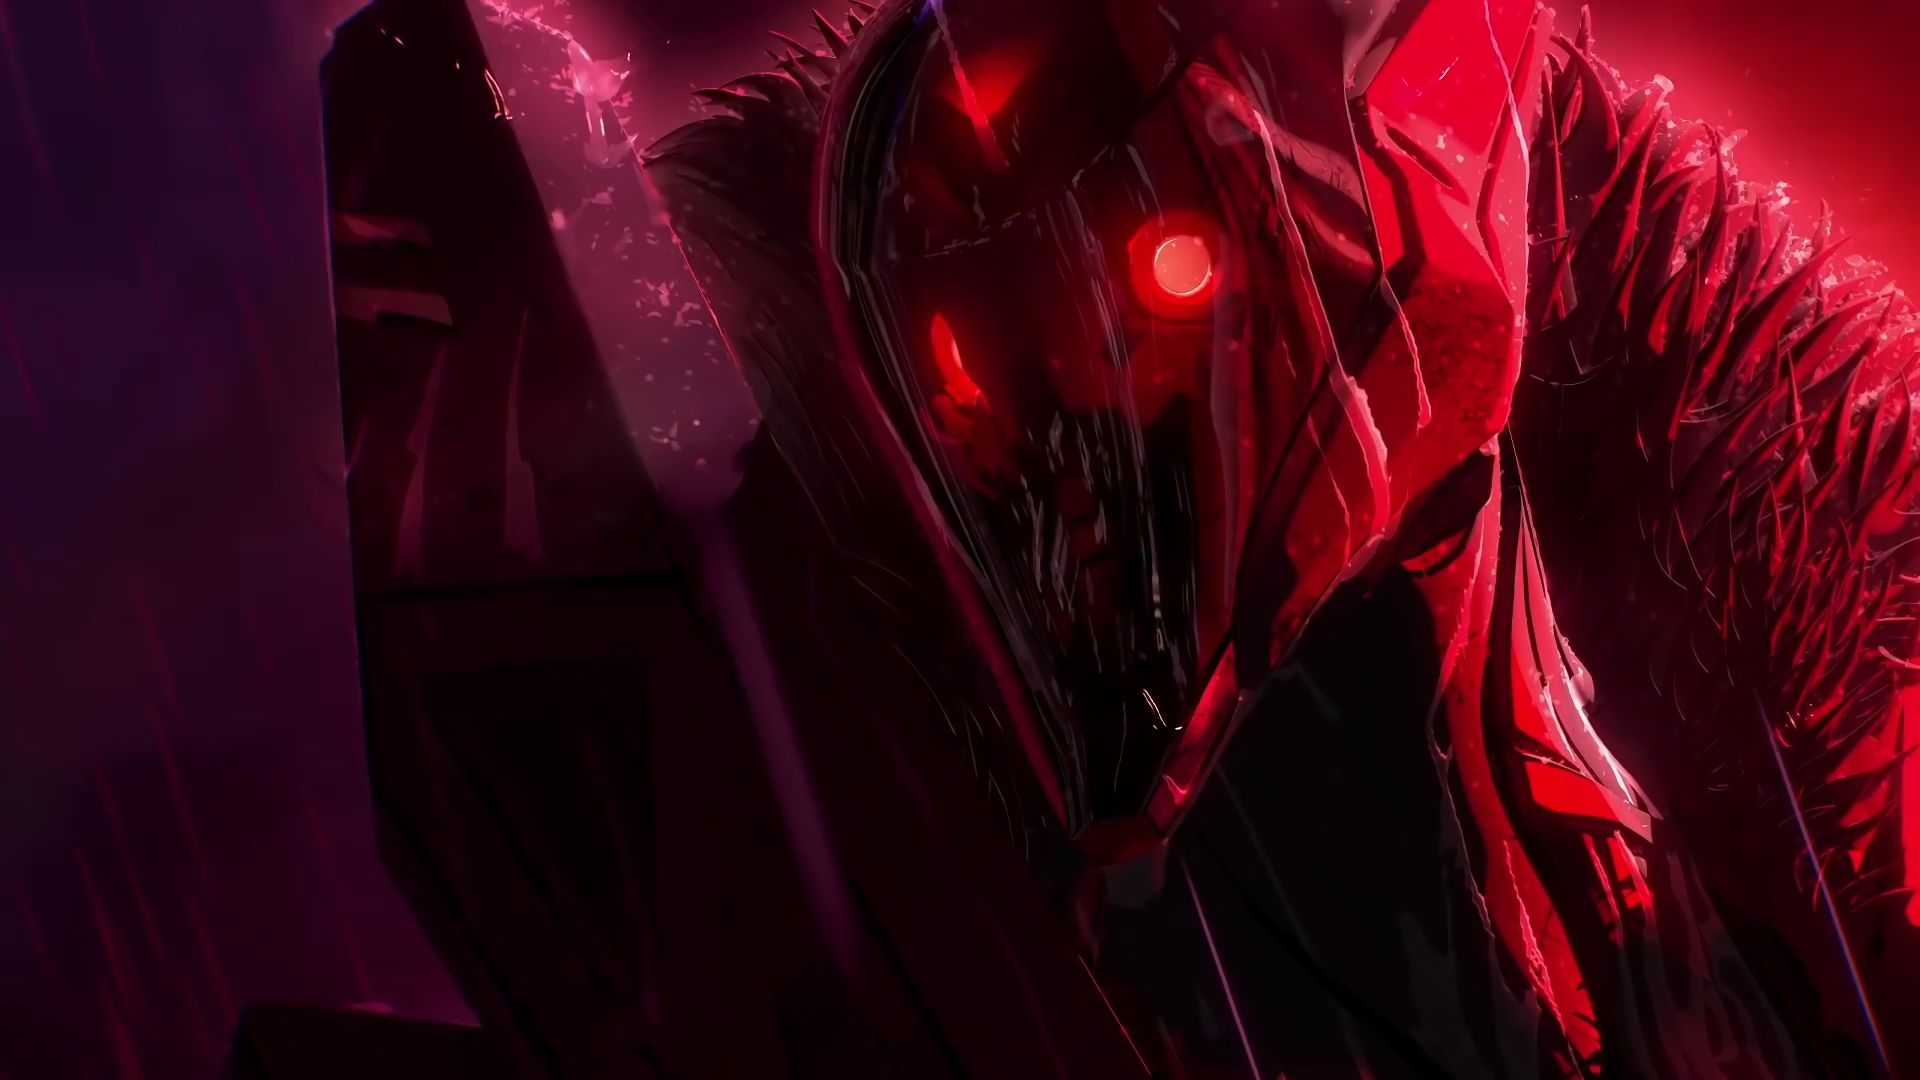 Hd Project Jhin League Of Legends Jhin In 2019 League Of